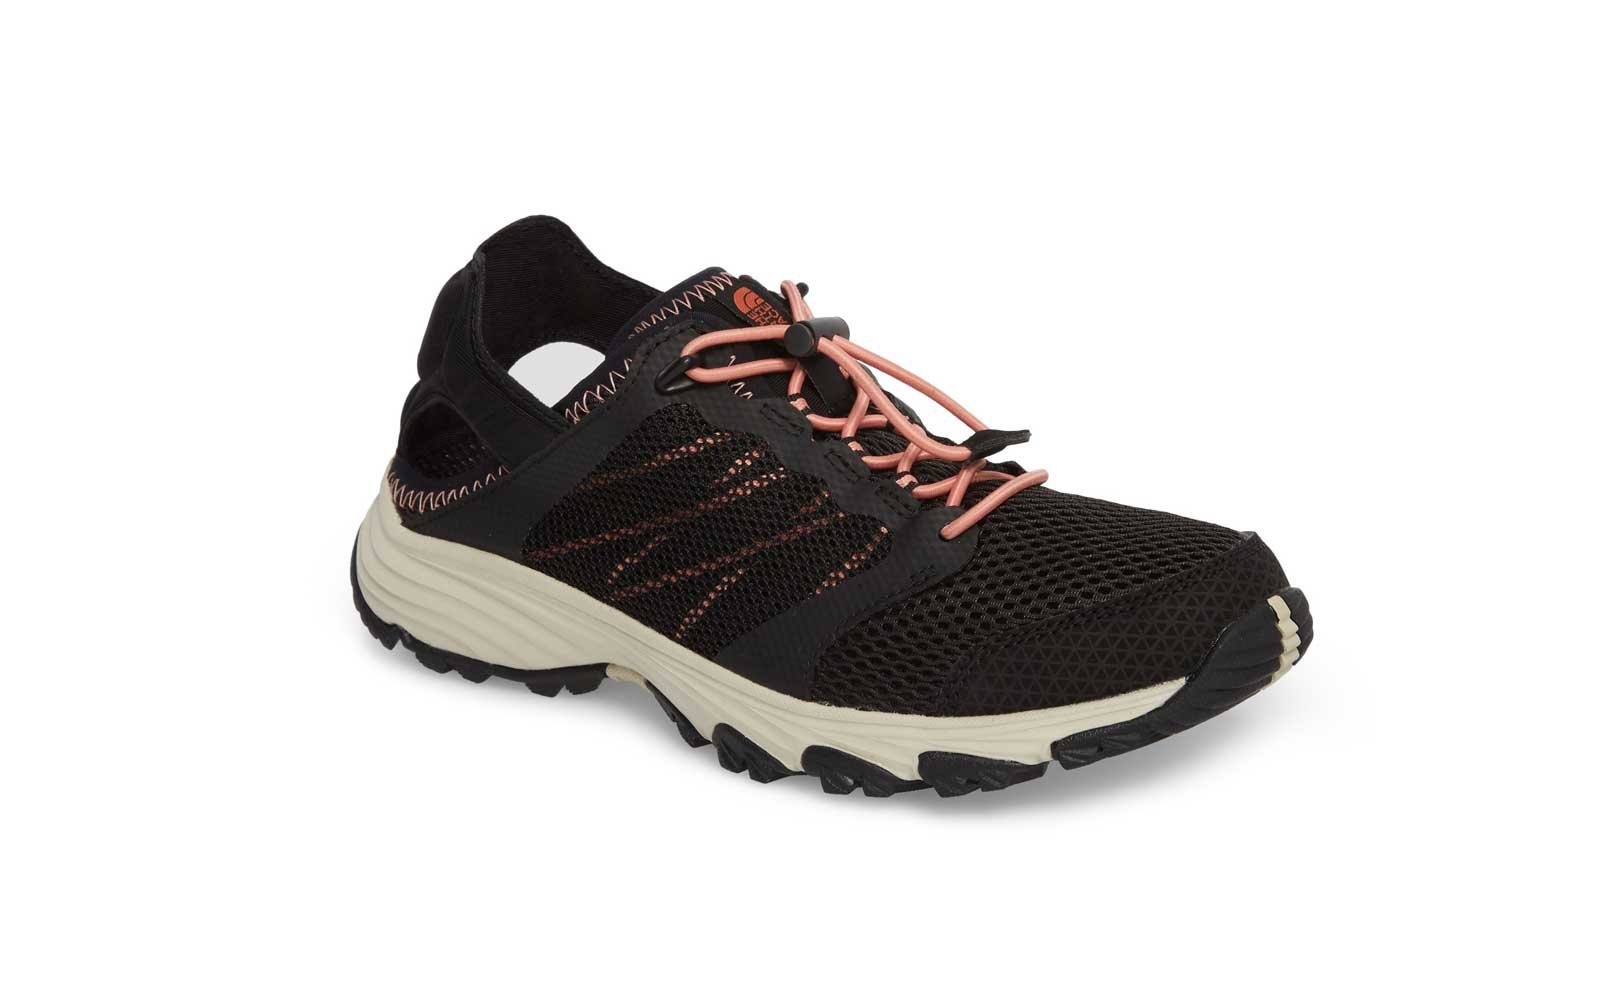 The North Face Womens Water Shoes